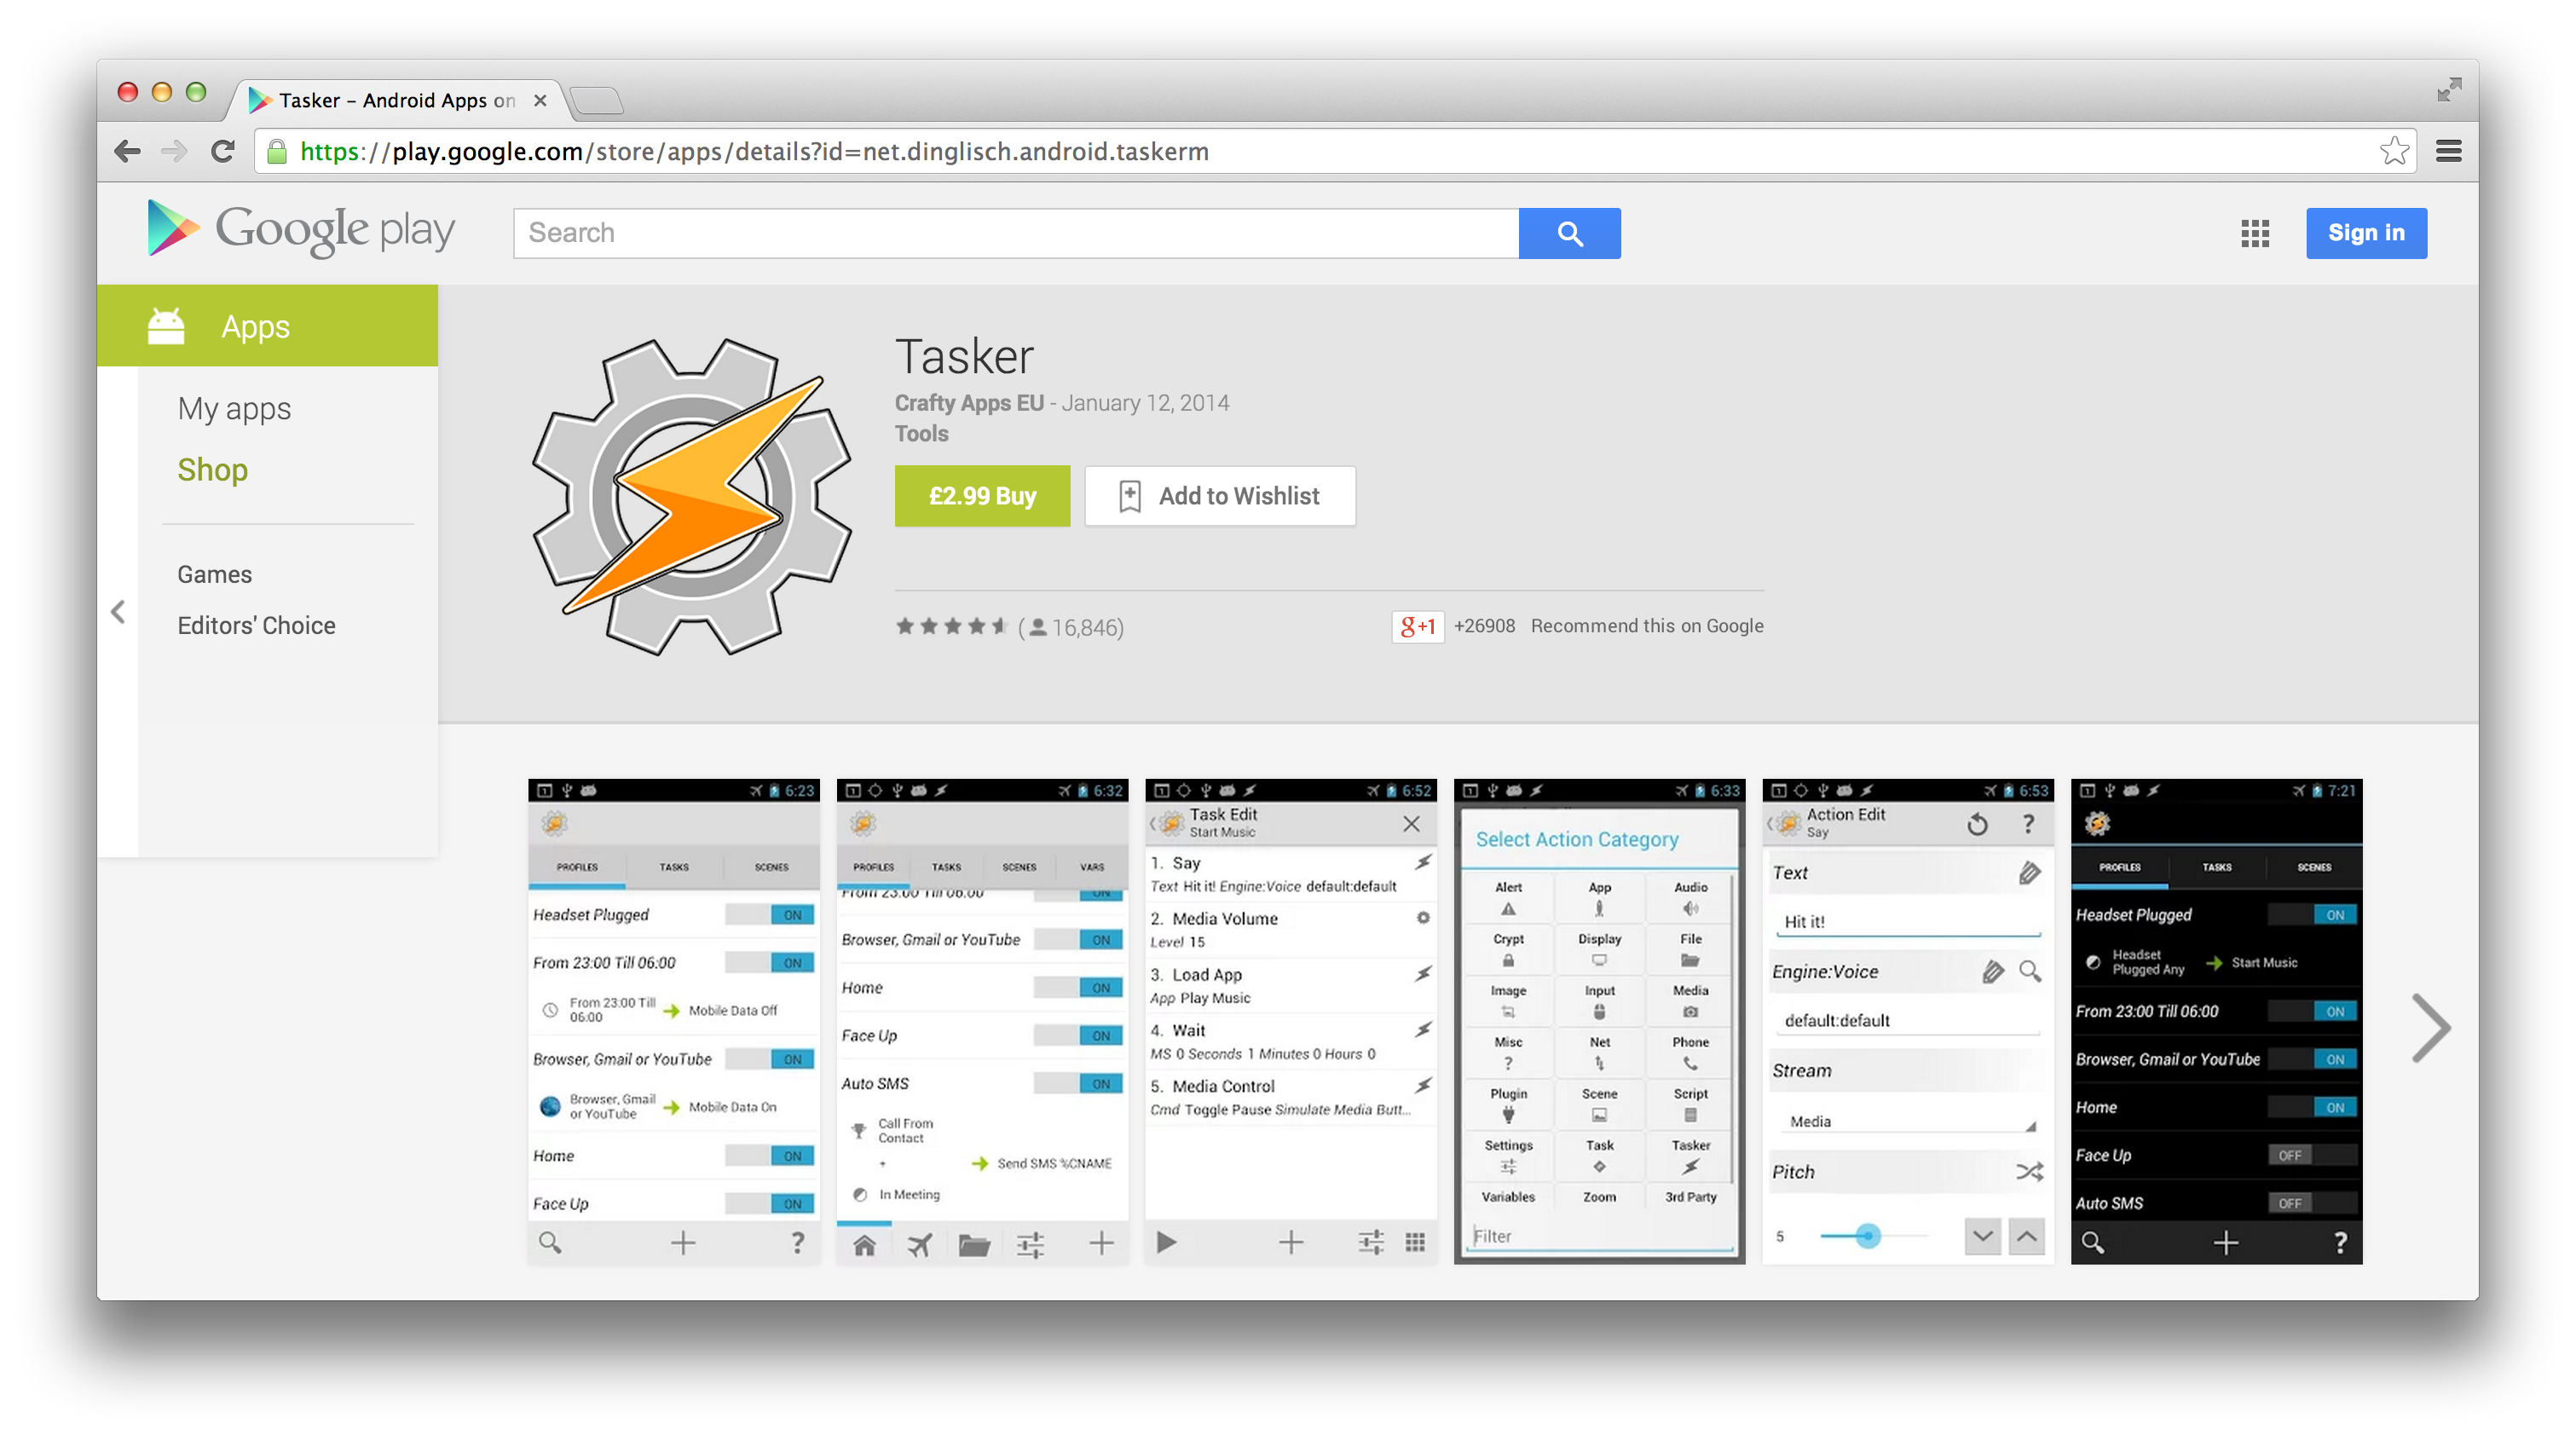 Supercharge your Android Device's Abilities with Tasker